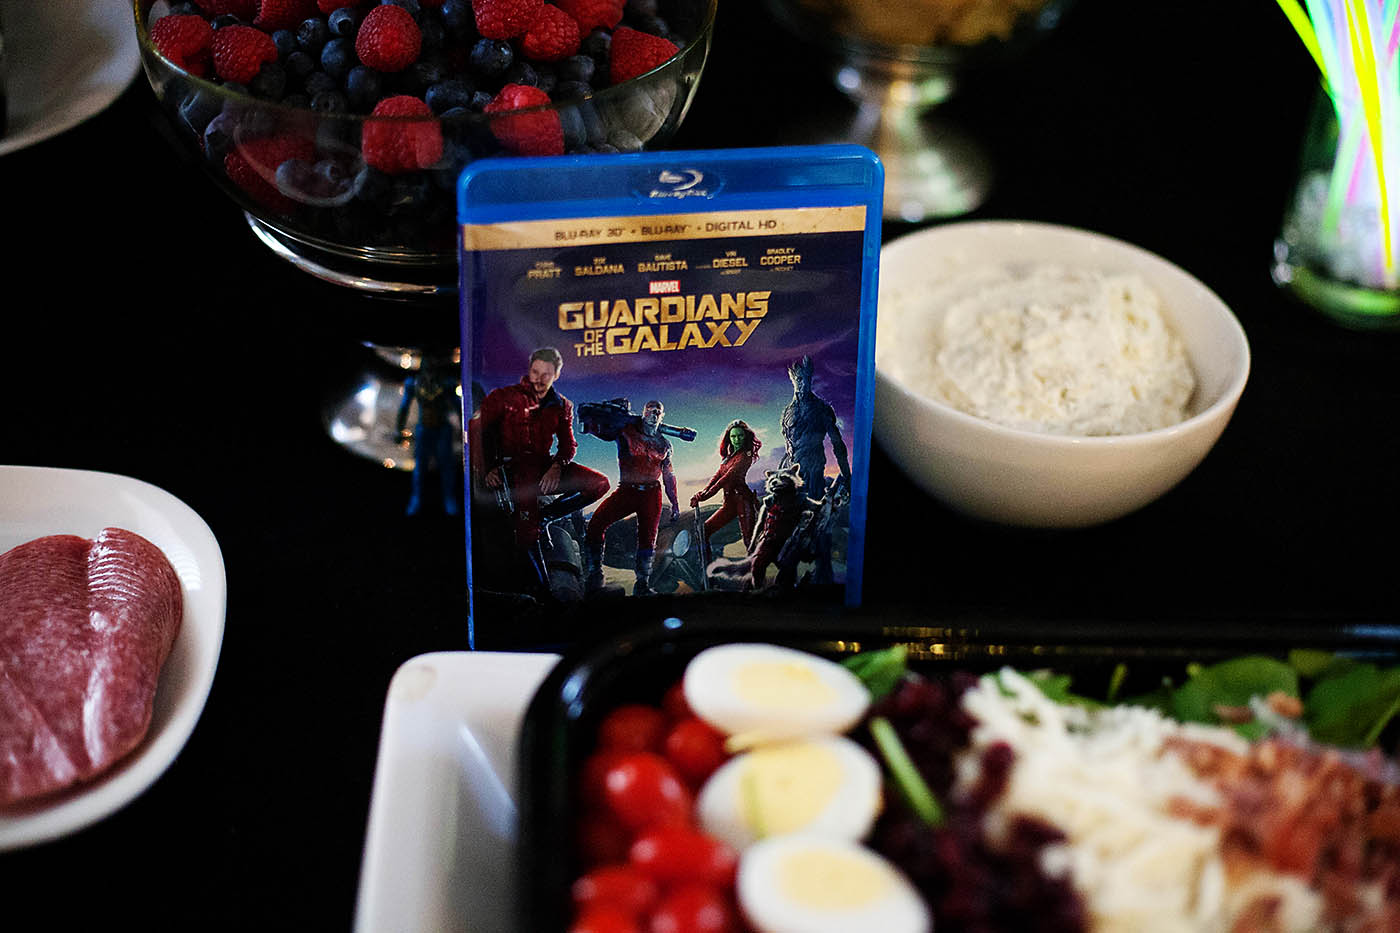 Guardians of the Galaxy movie night dance party